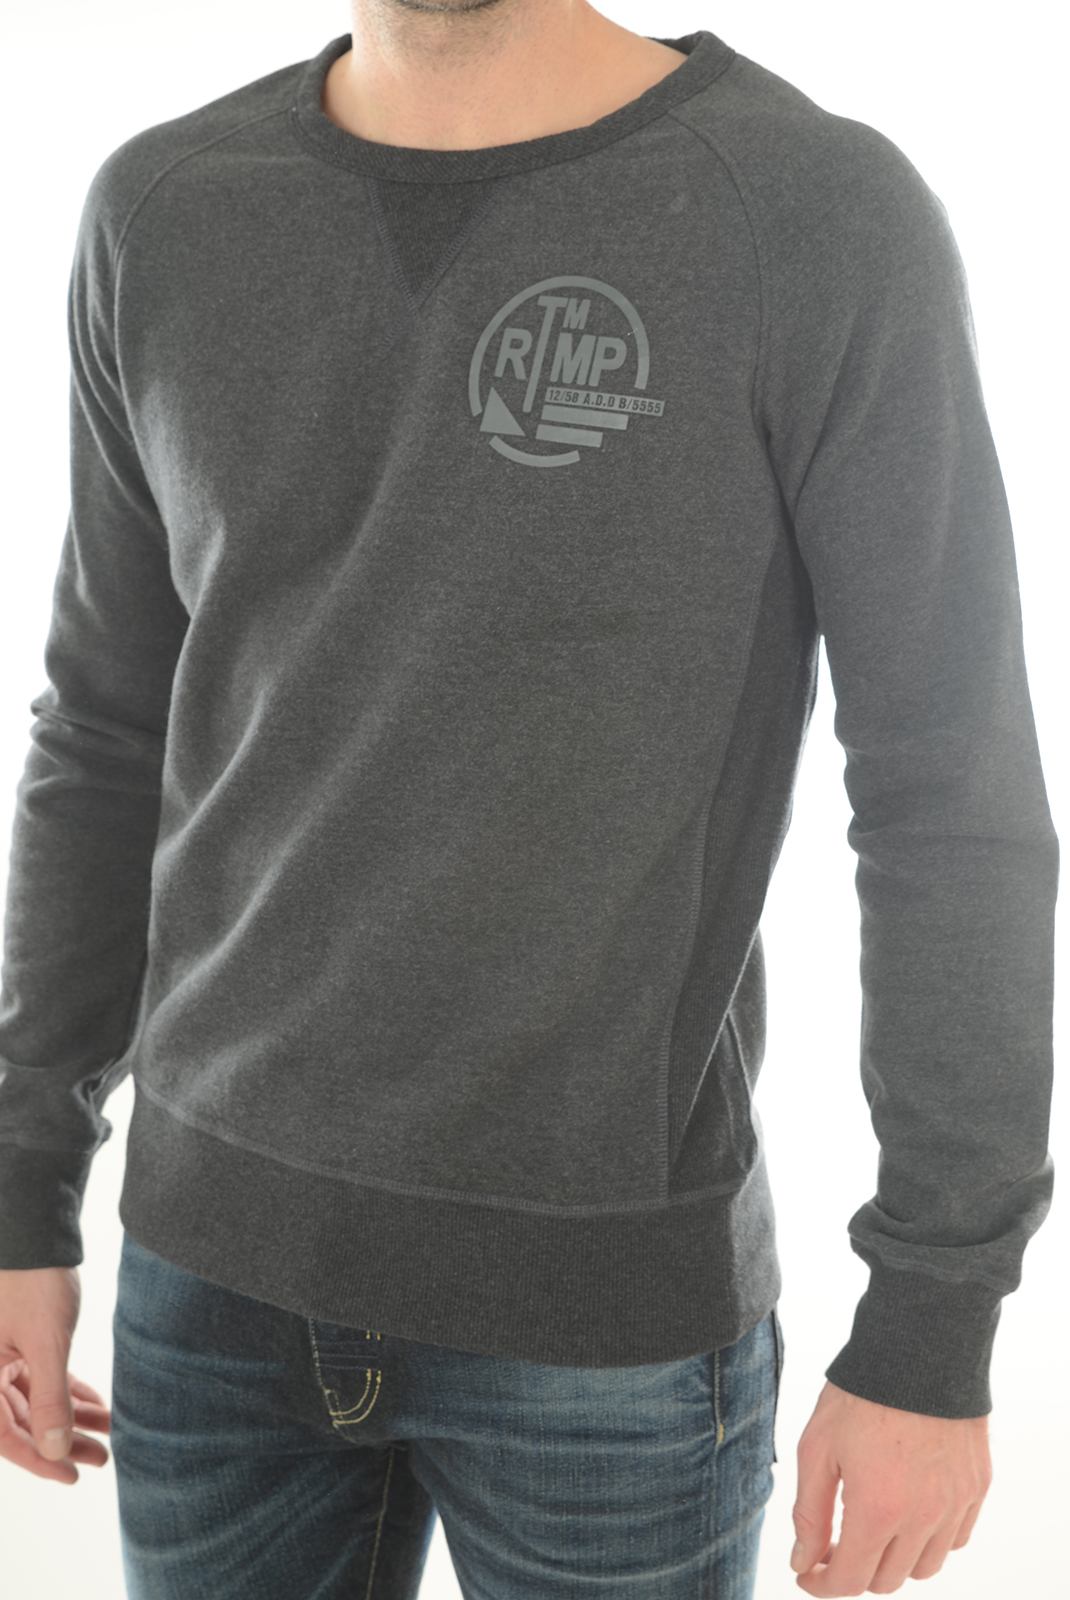 Sweatshirts  Meltin'pot MPMFL002 GM51 GRIS